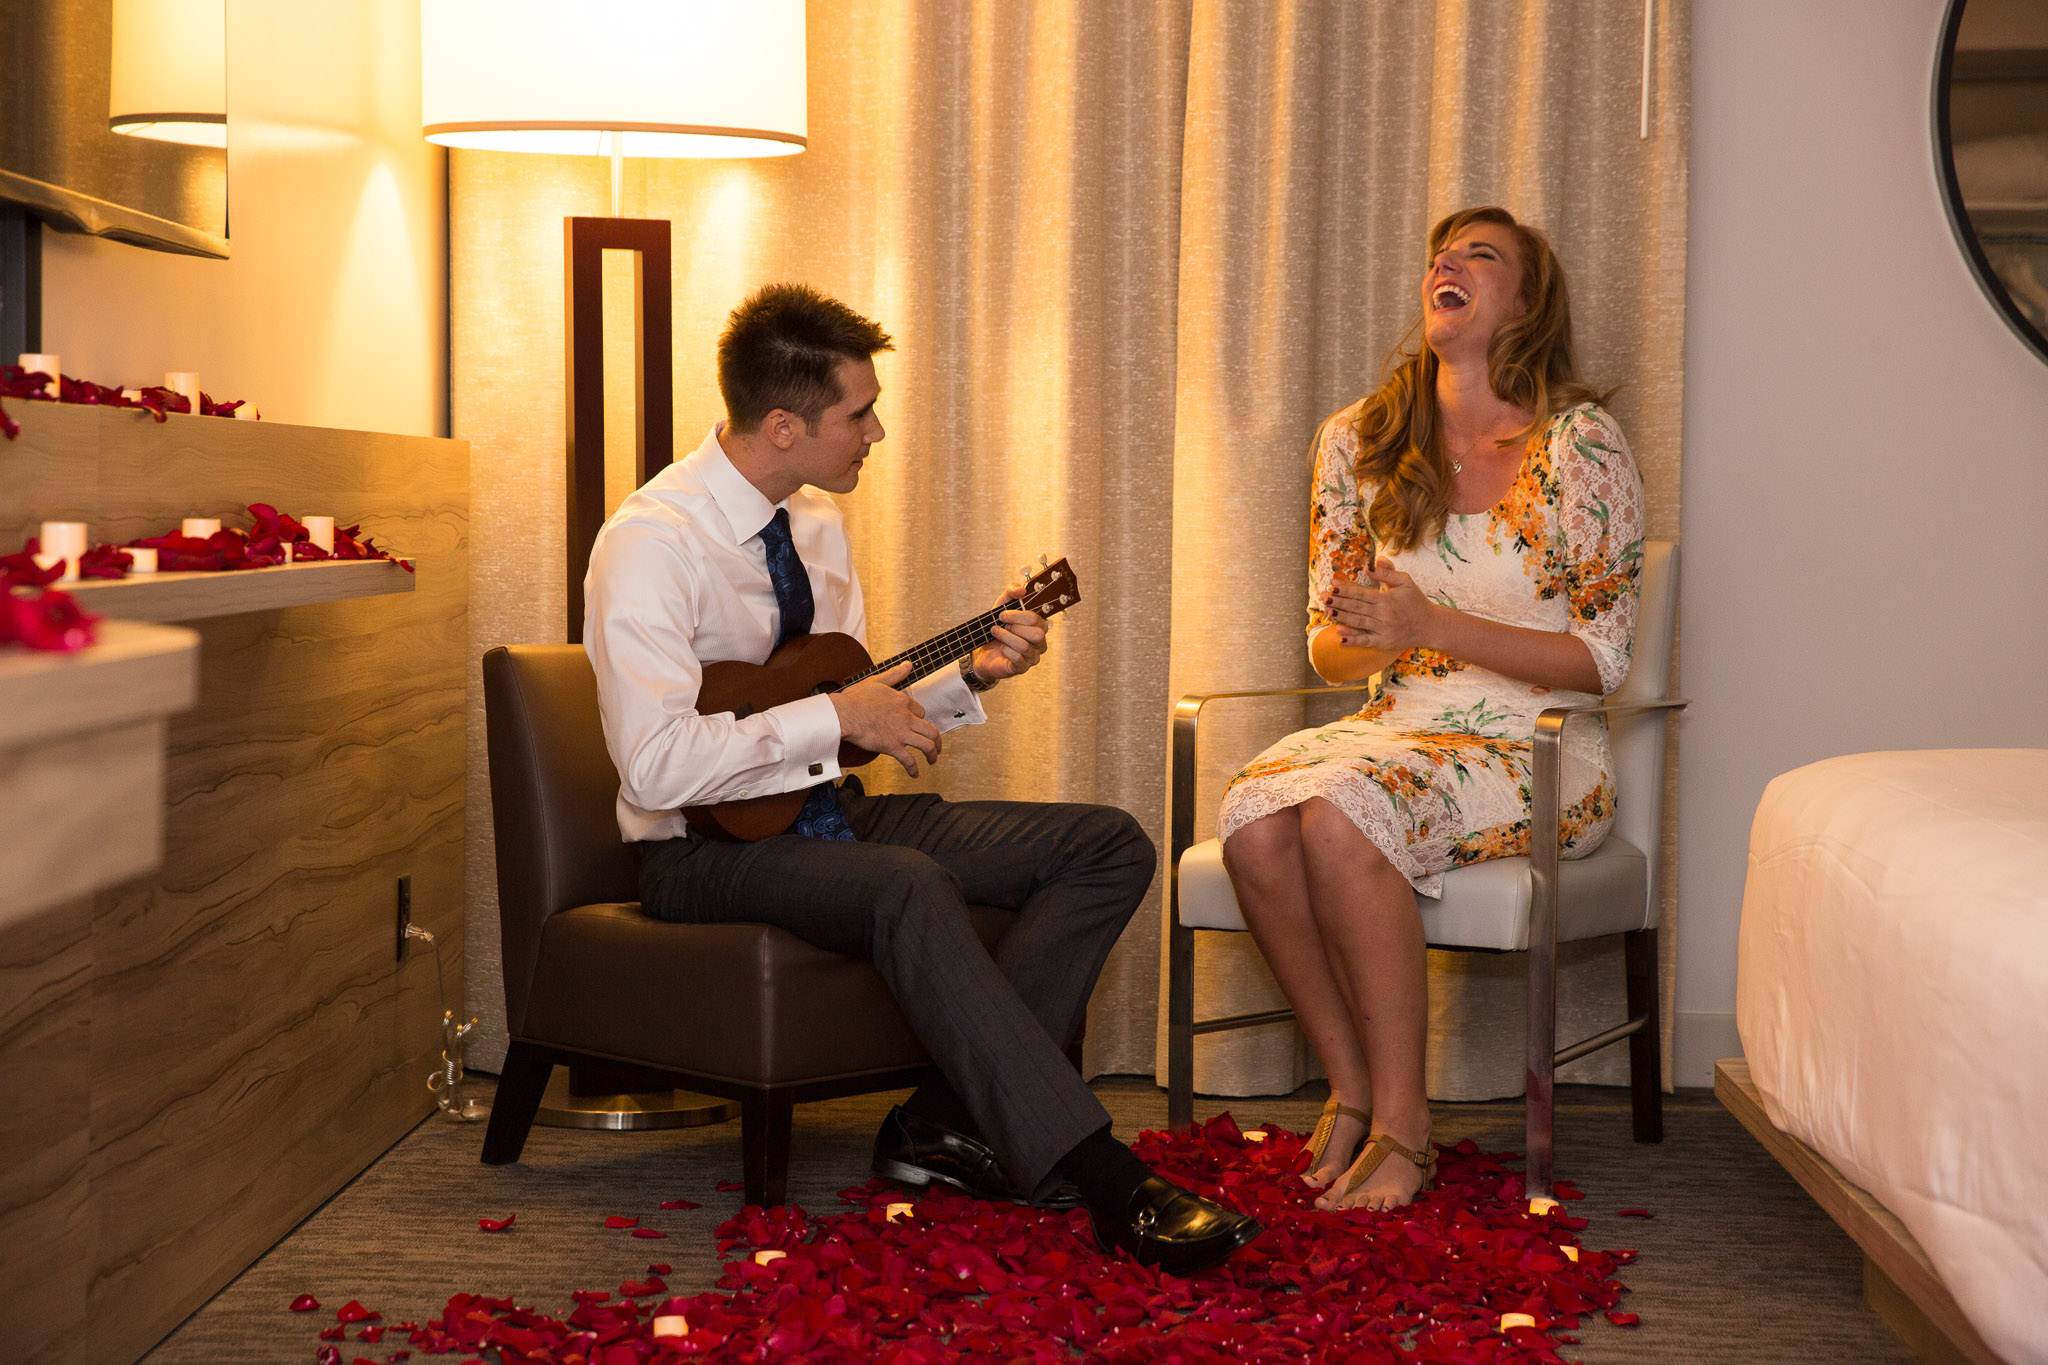 Romantic-proposal-ukelele